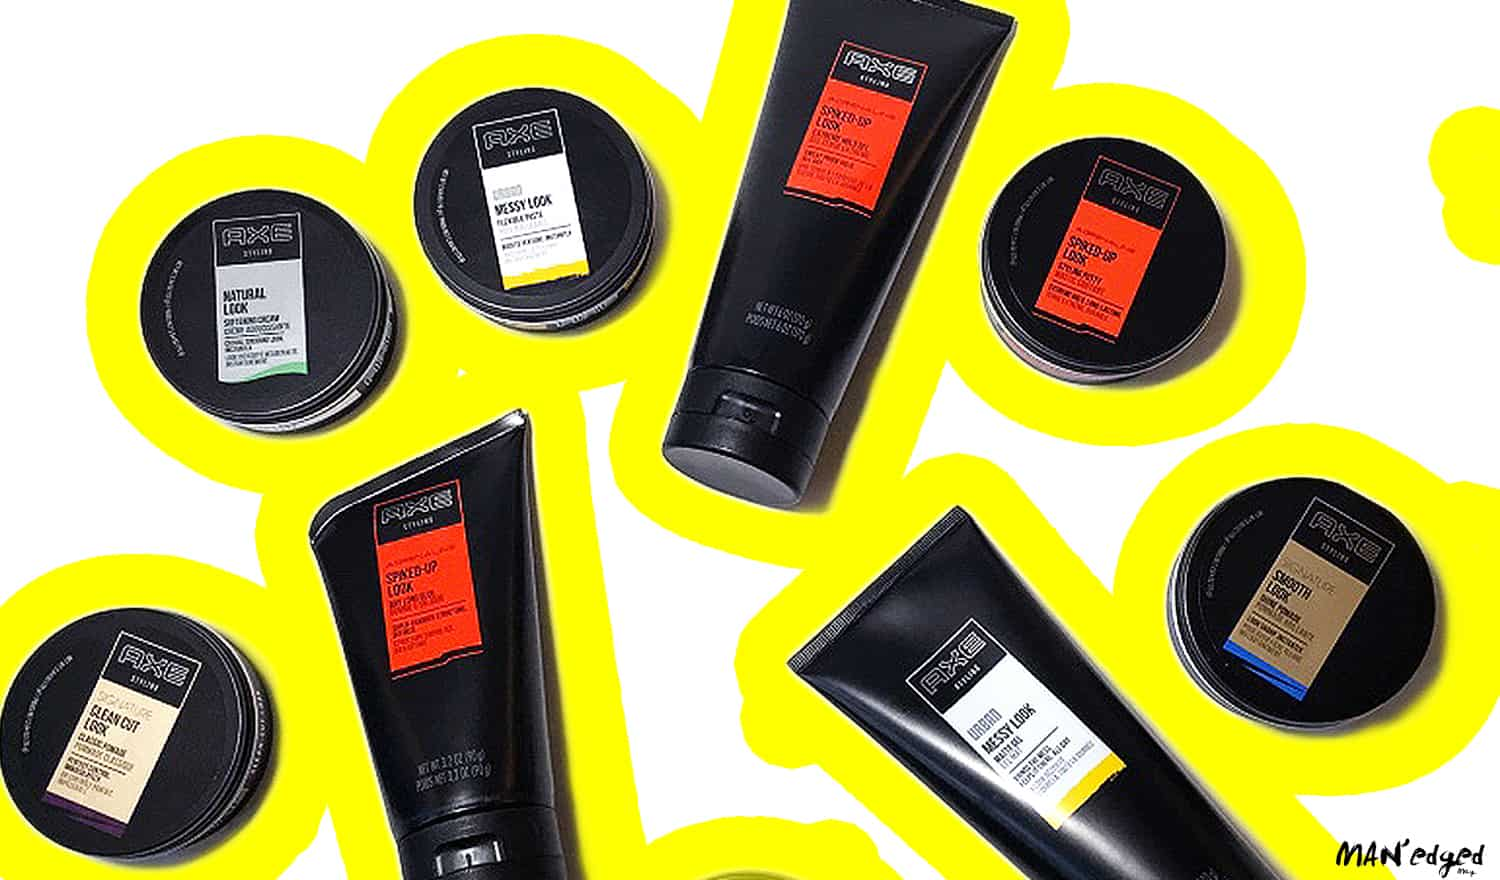 The new men's axe grooming product selection featuring new product packaging.